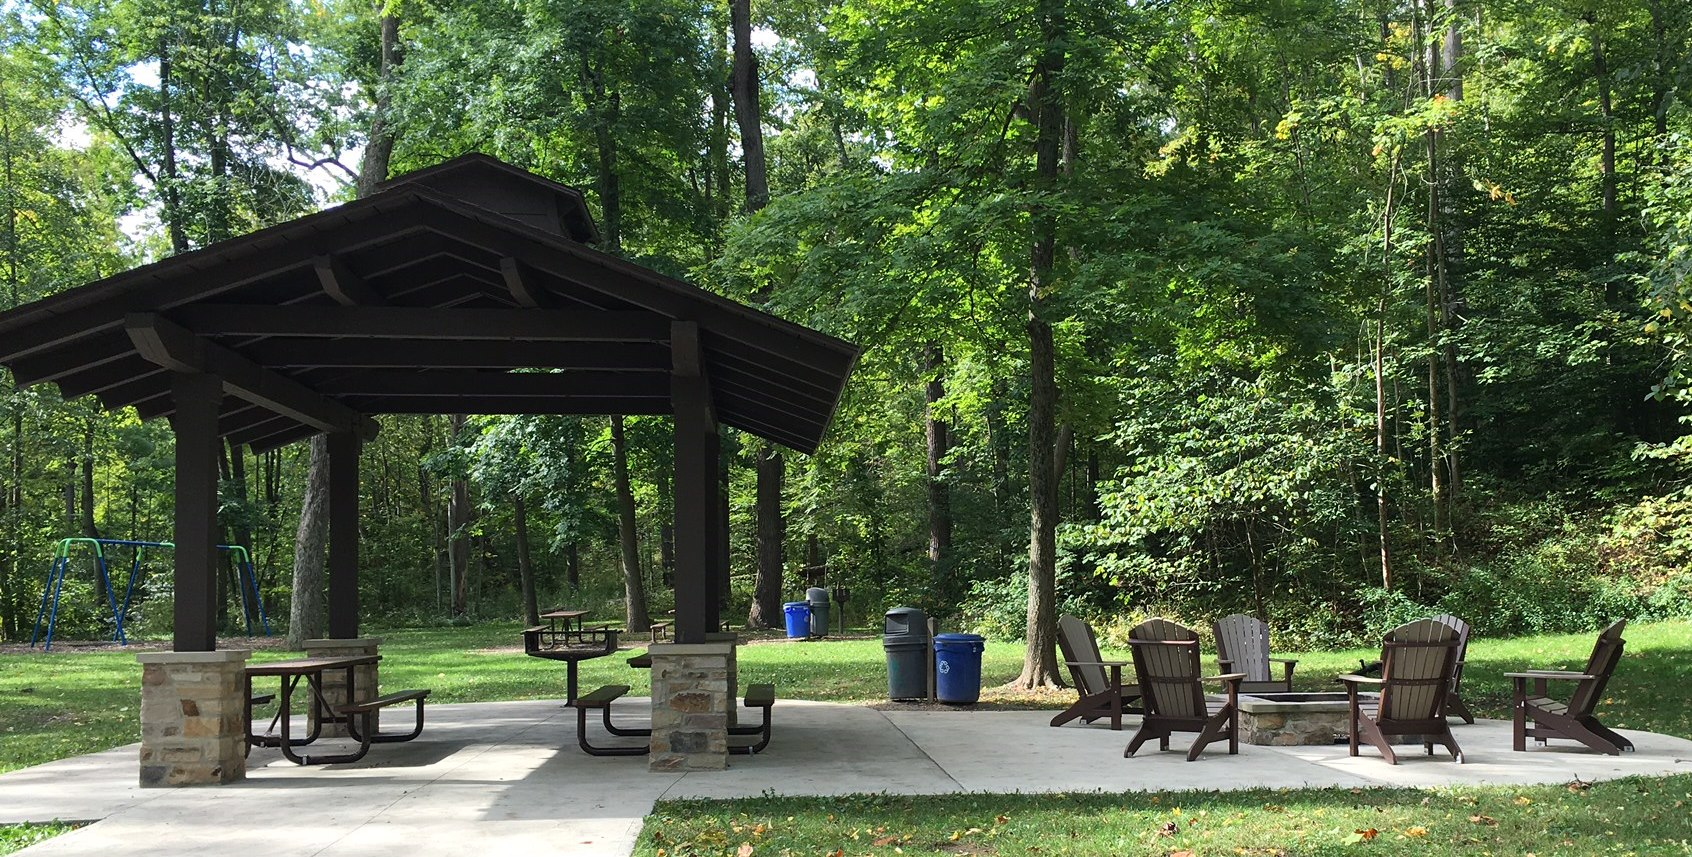 A photo of Johnson's Picnic area, featuring a covered shelter and concrete patio area.